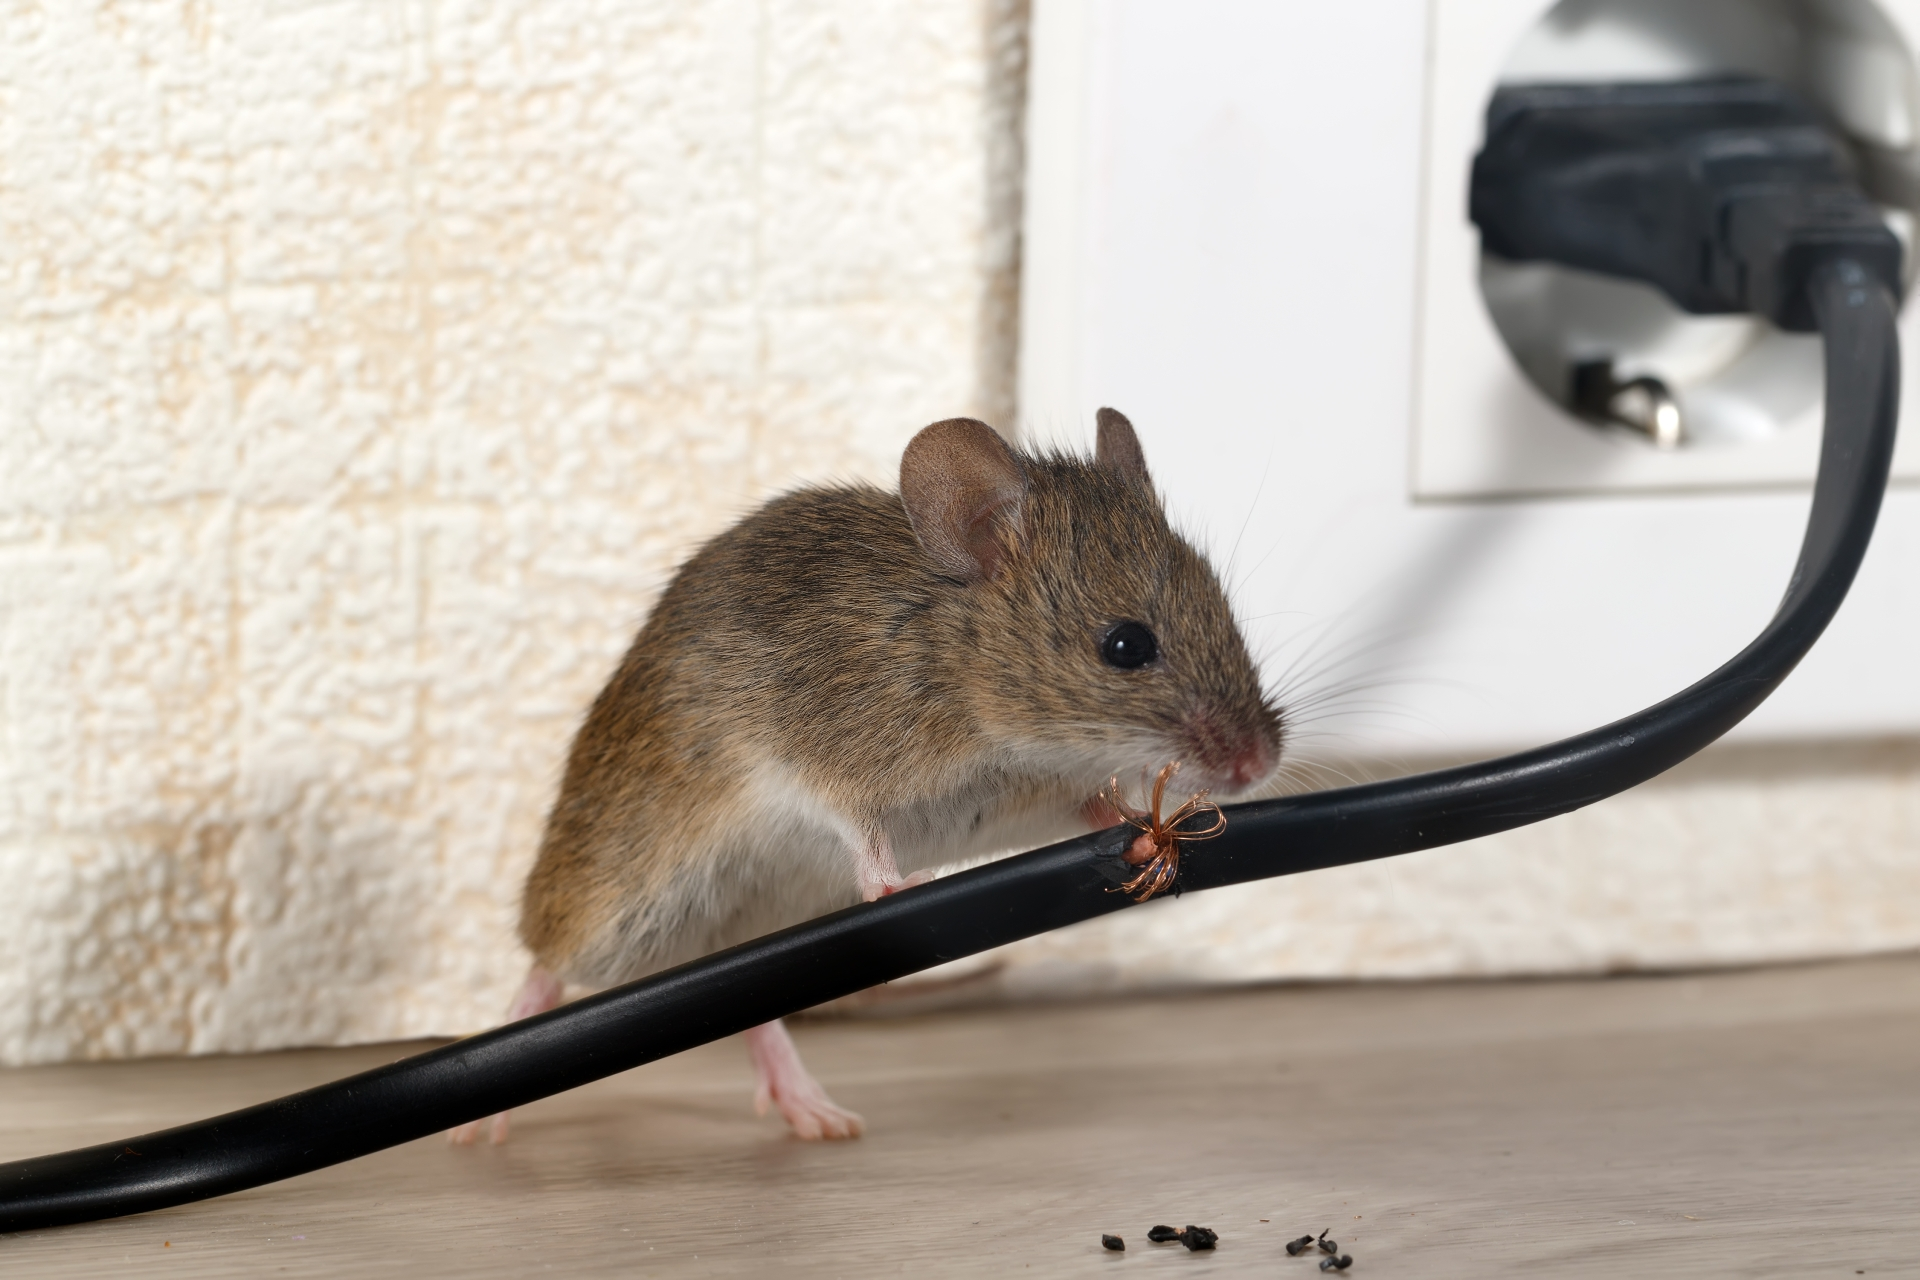 Mice Infestation, Pest Control in Wembley, Alperton, Sudbury, HA0. Call Now 020 8166 9746